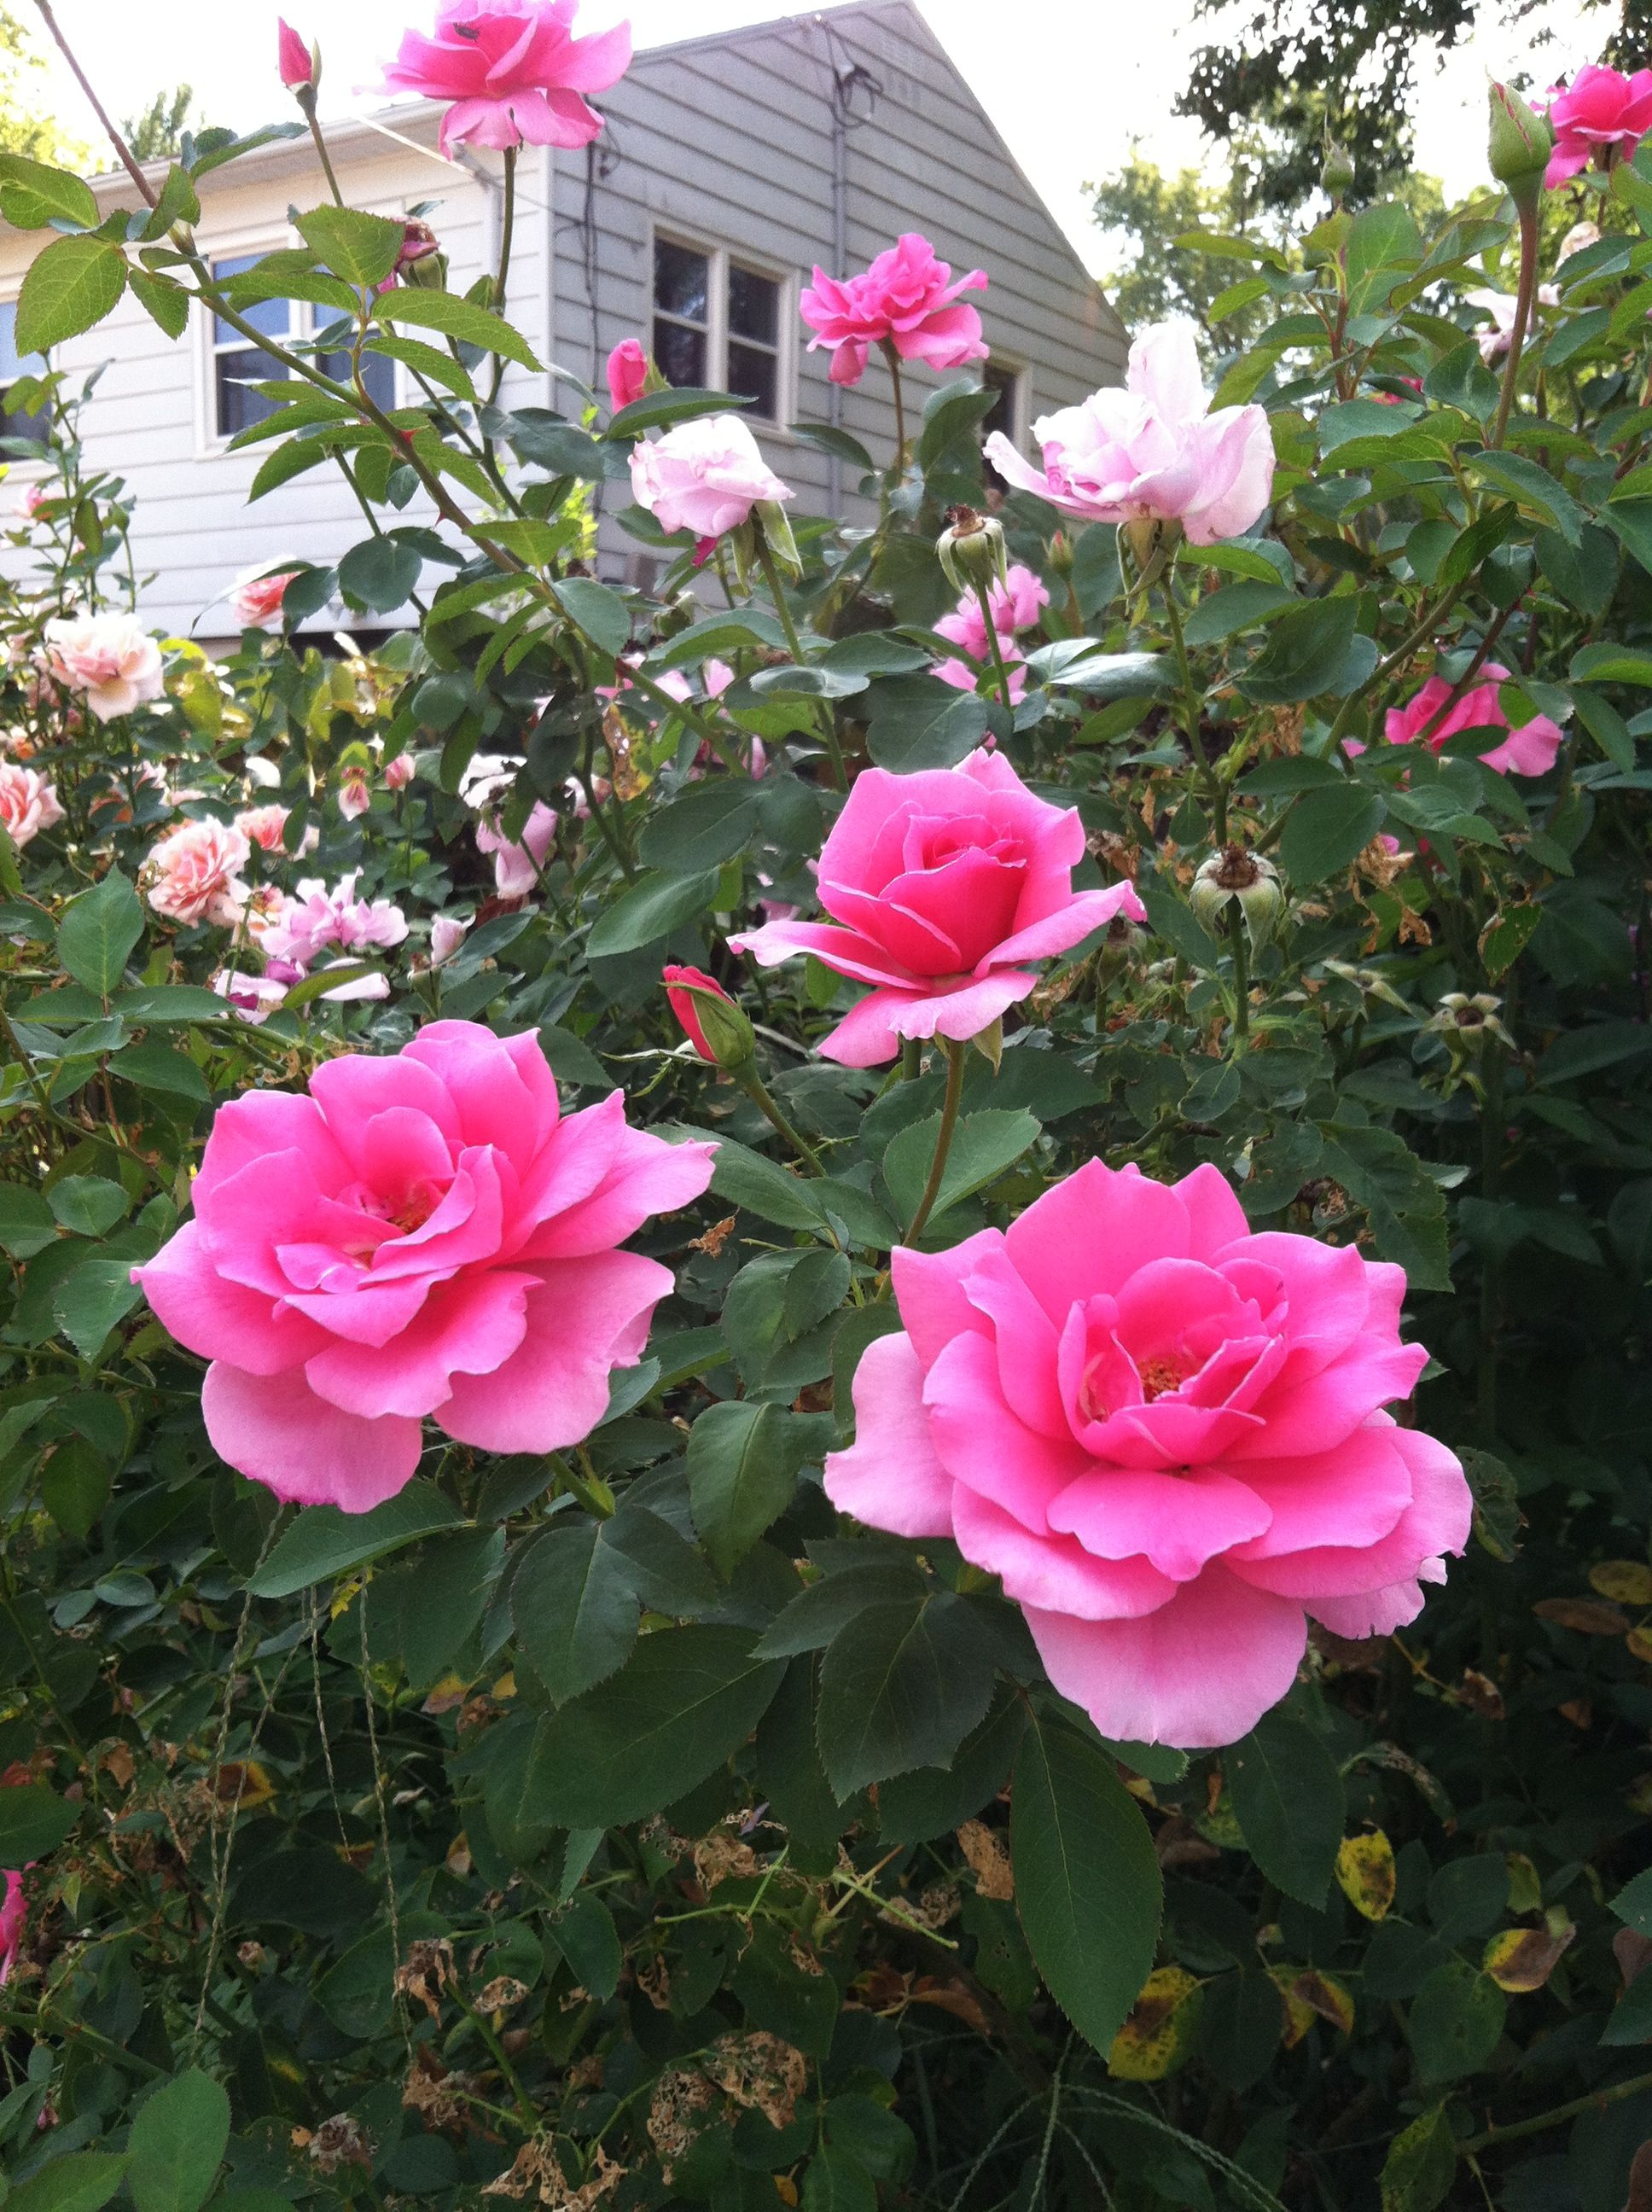 Prettiest Pink Rose Ever Flowers And Gardens Pinterest